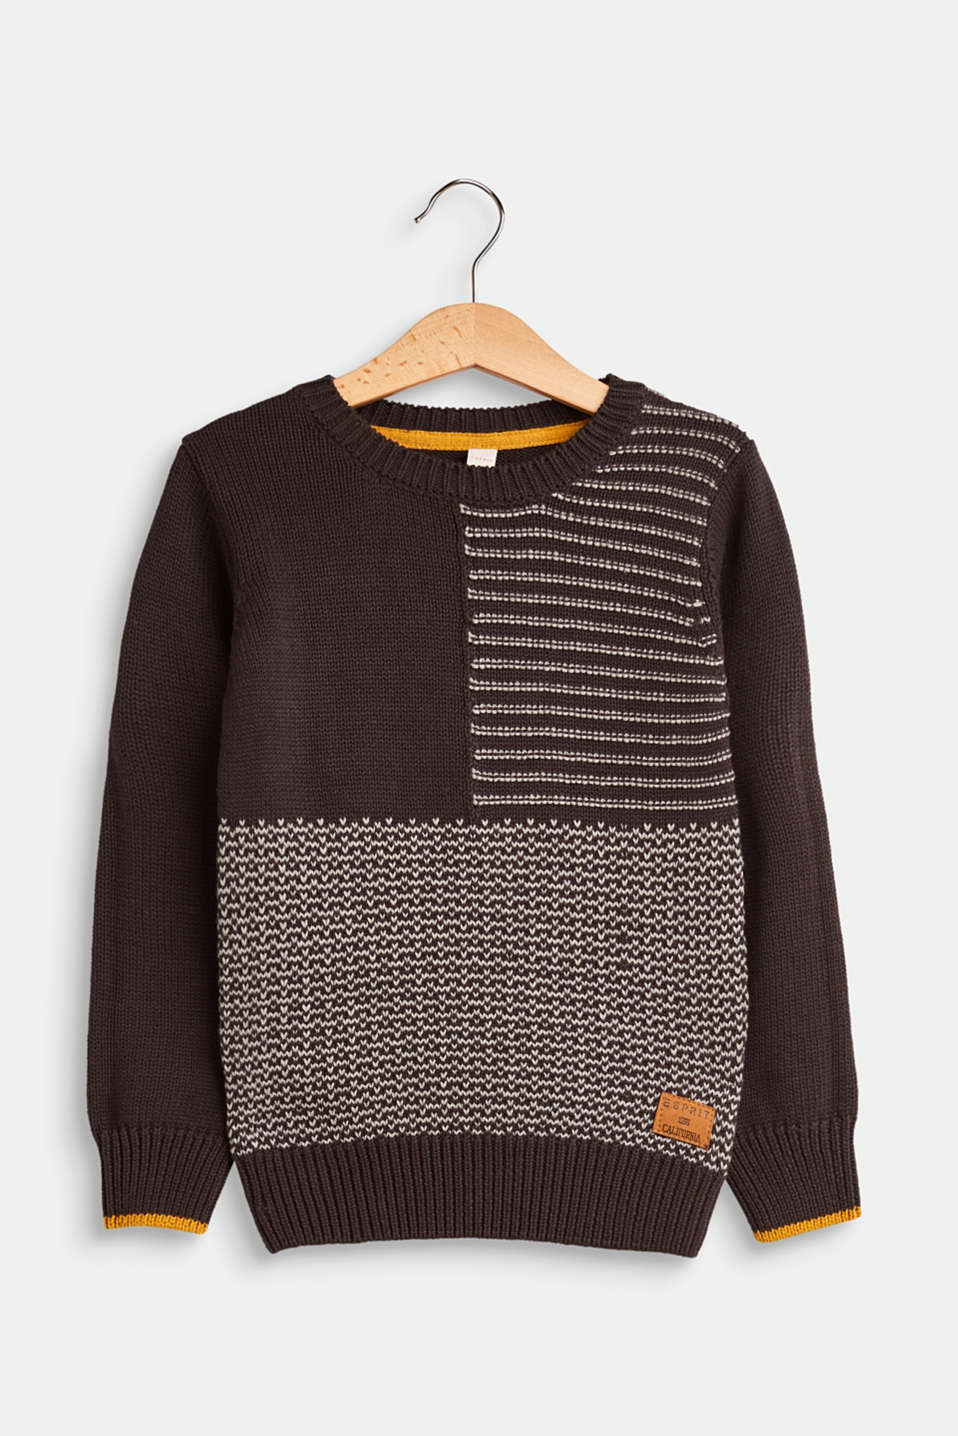 Esprit - Jumper with a textured pattern, 100% cotton